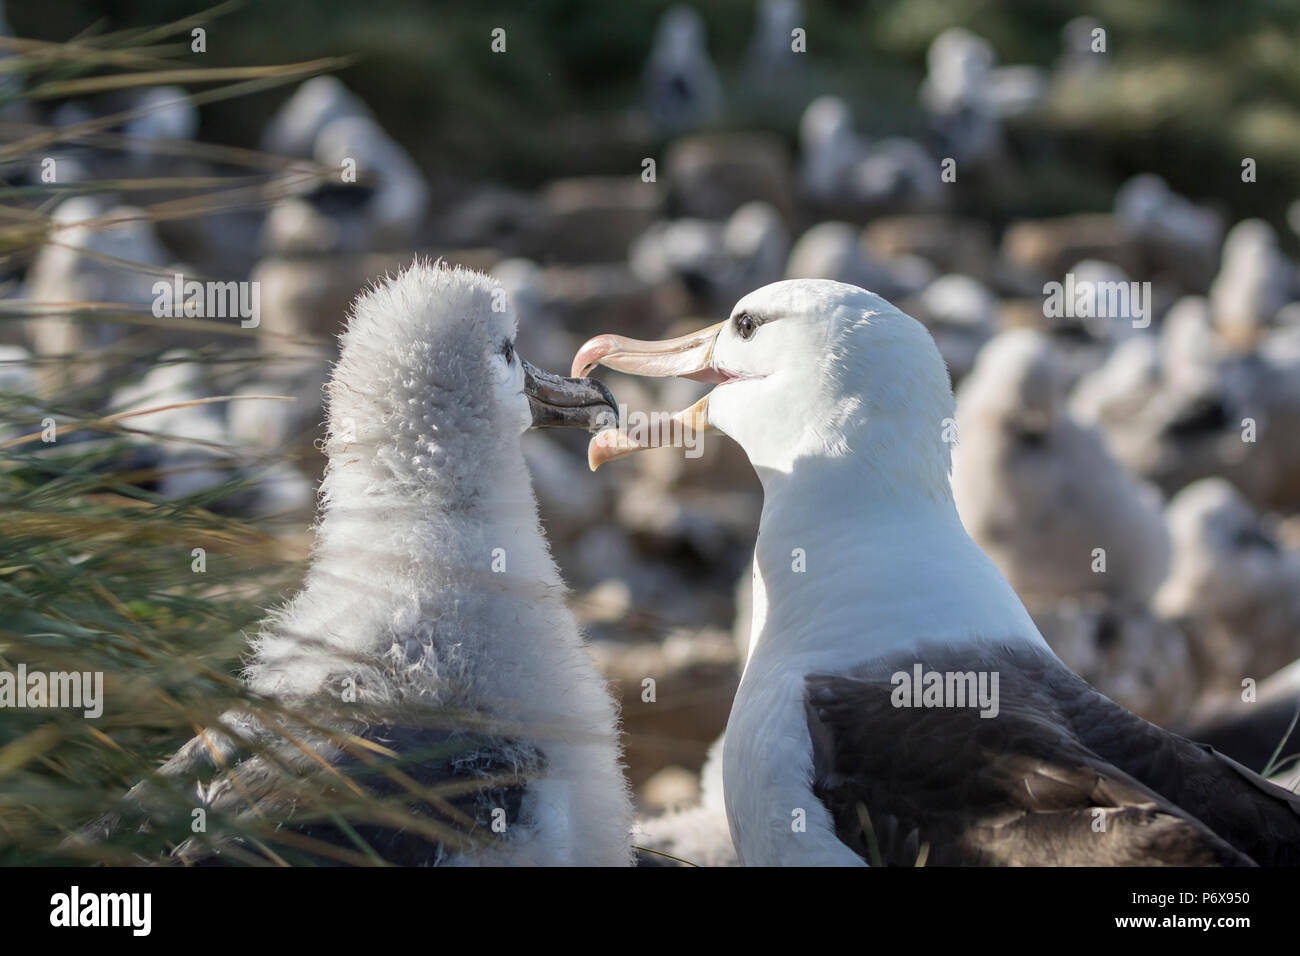 Adult black-browed albatross regurgitating food to feed large fluffy chick on nest at Steeple Jason Island, Falkland Islands Stock Photo